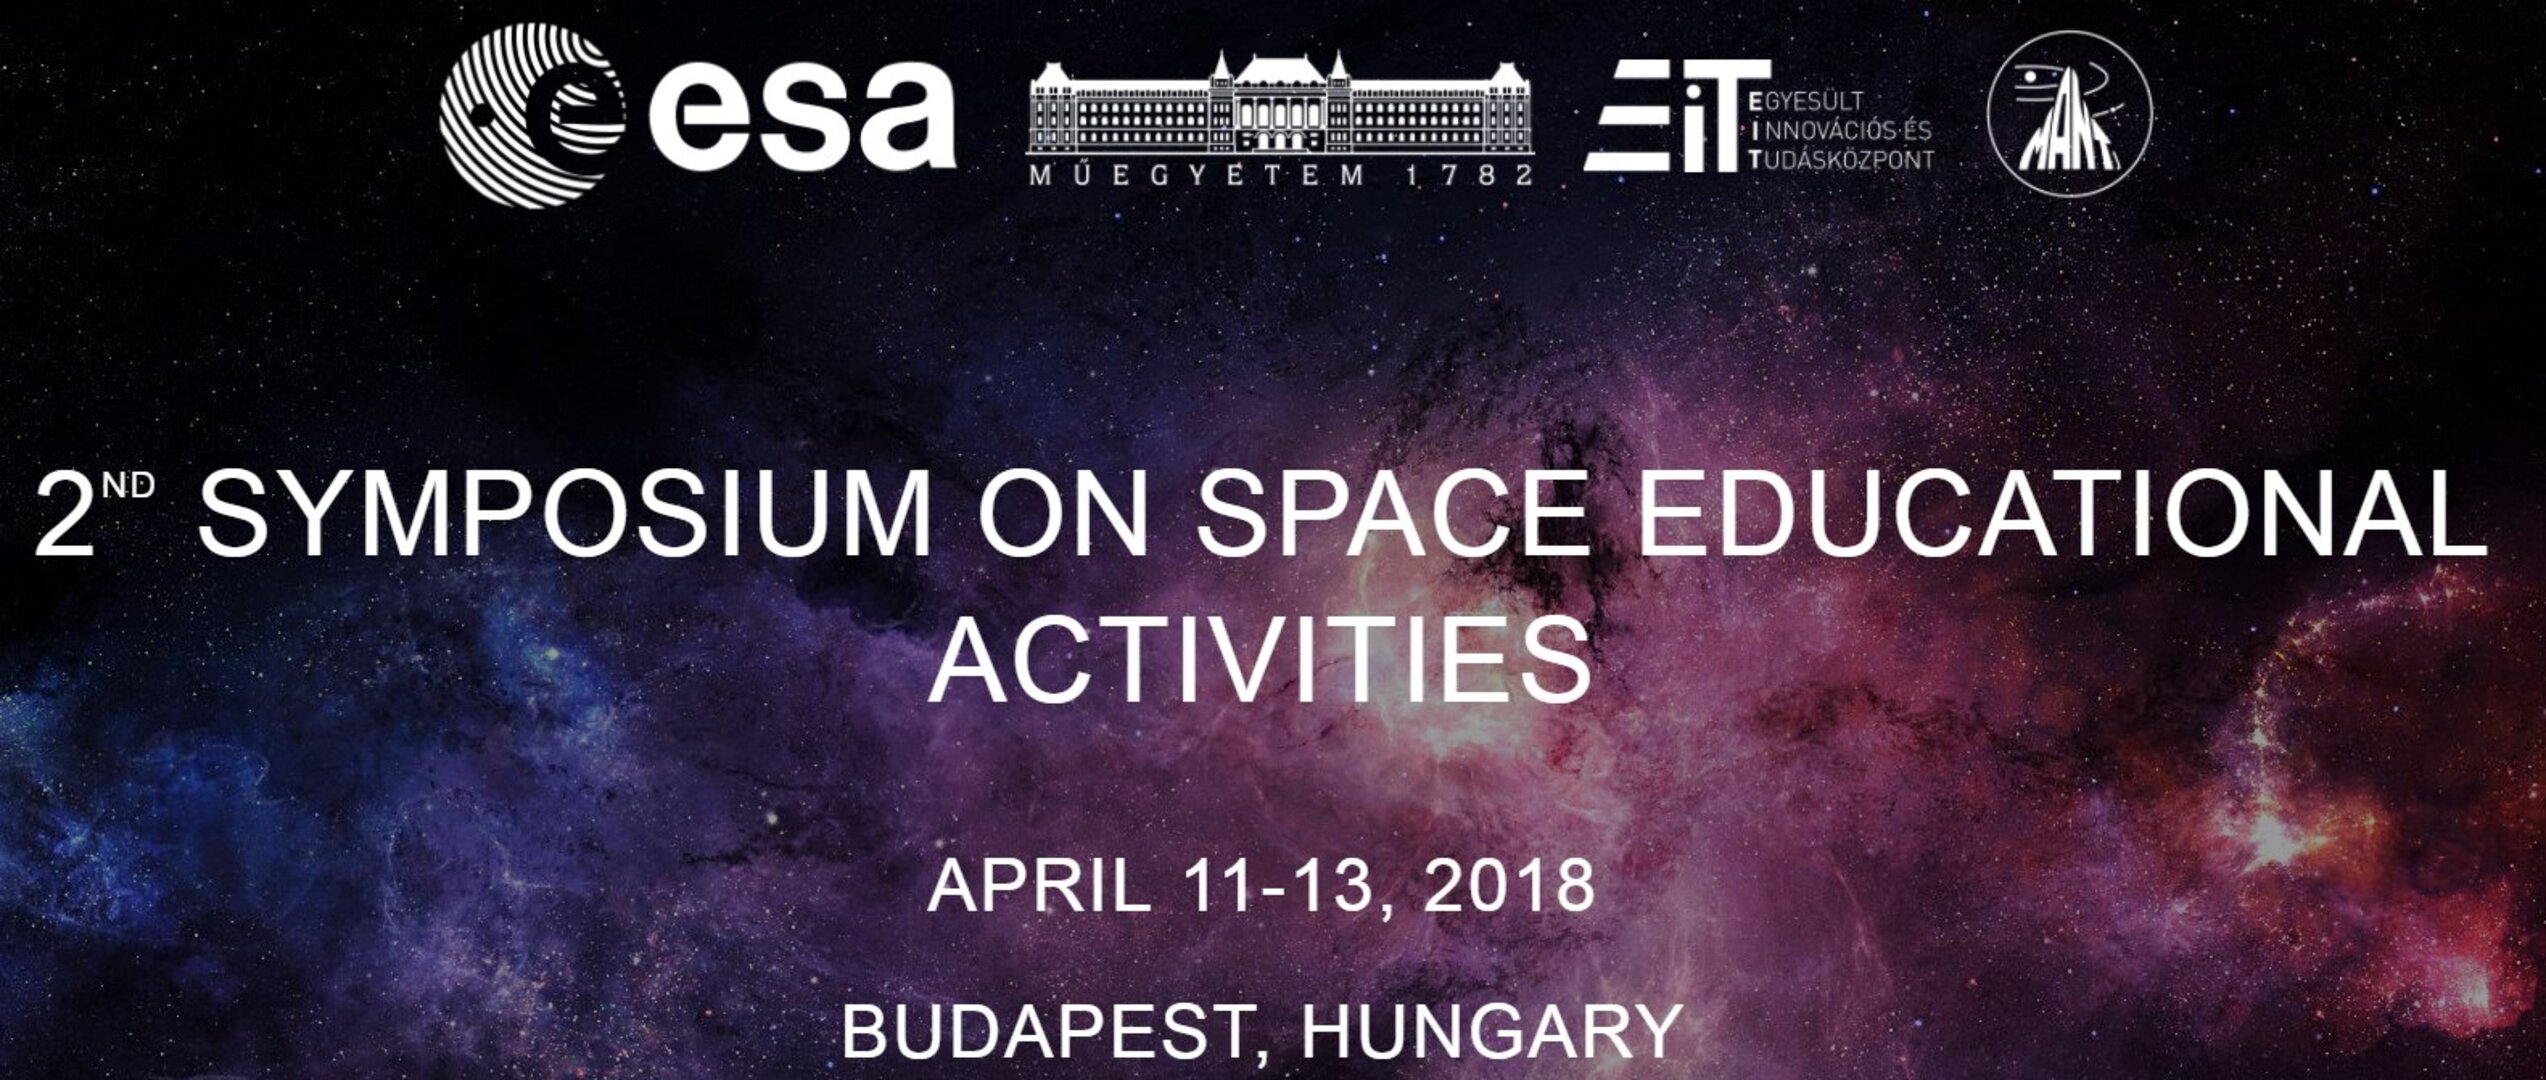 2nd Symposium on Space Educational Activities